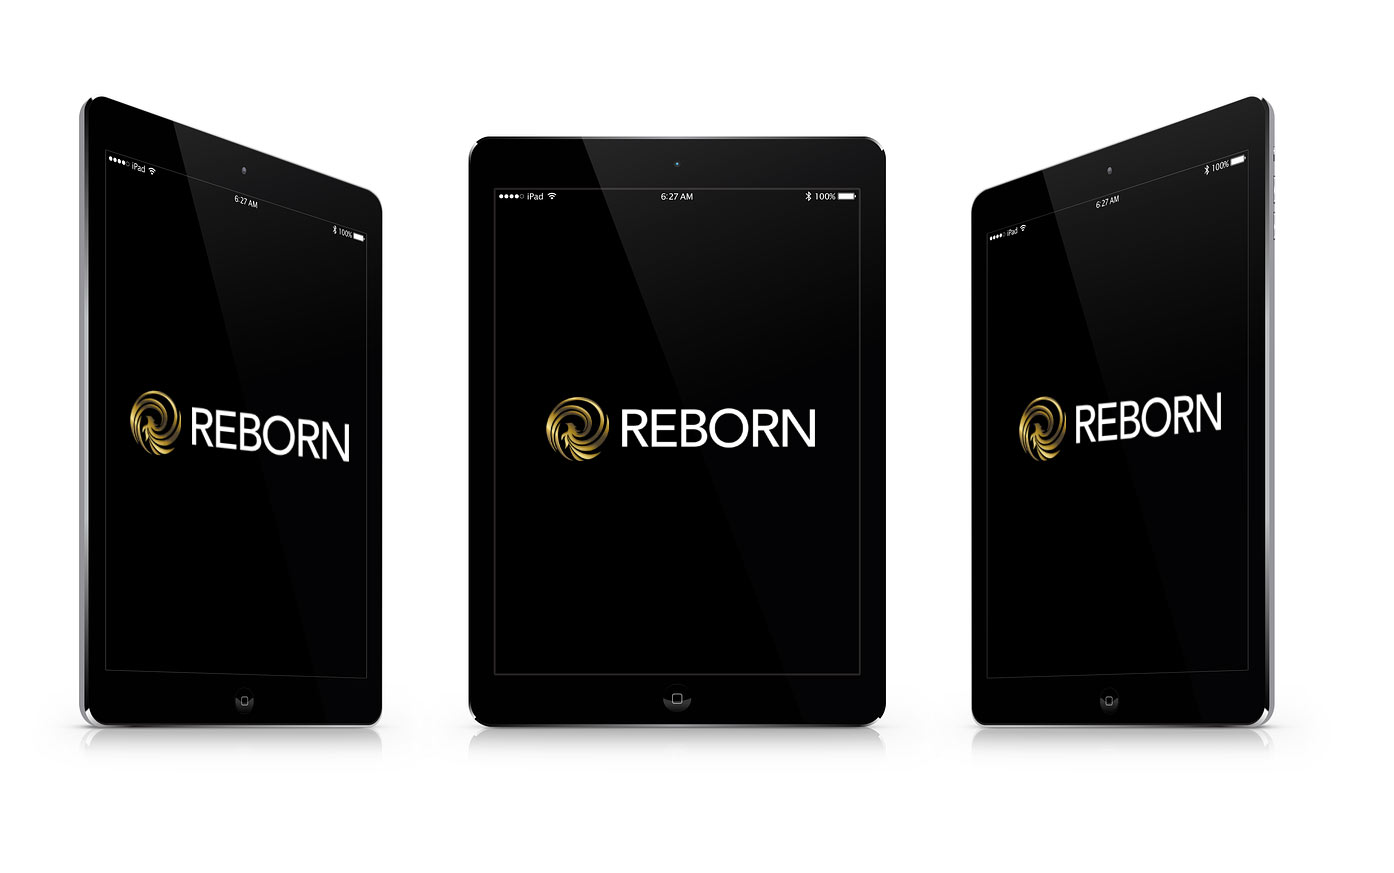 iPad Air 16Go reconditionné à neuf REBORN